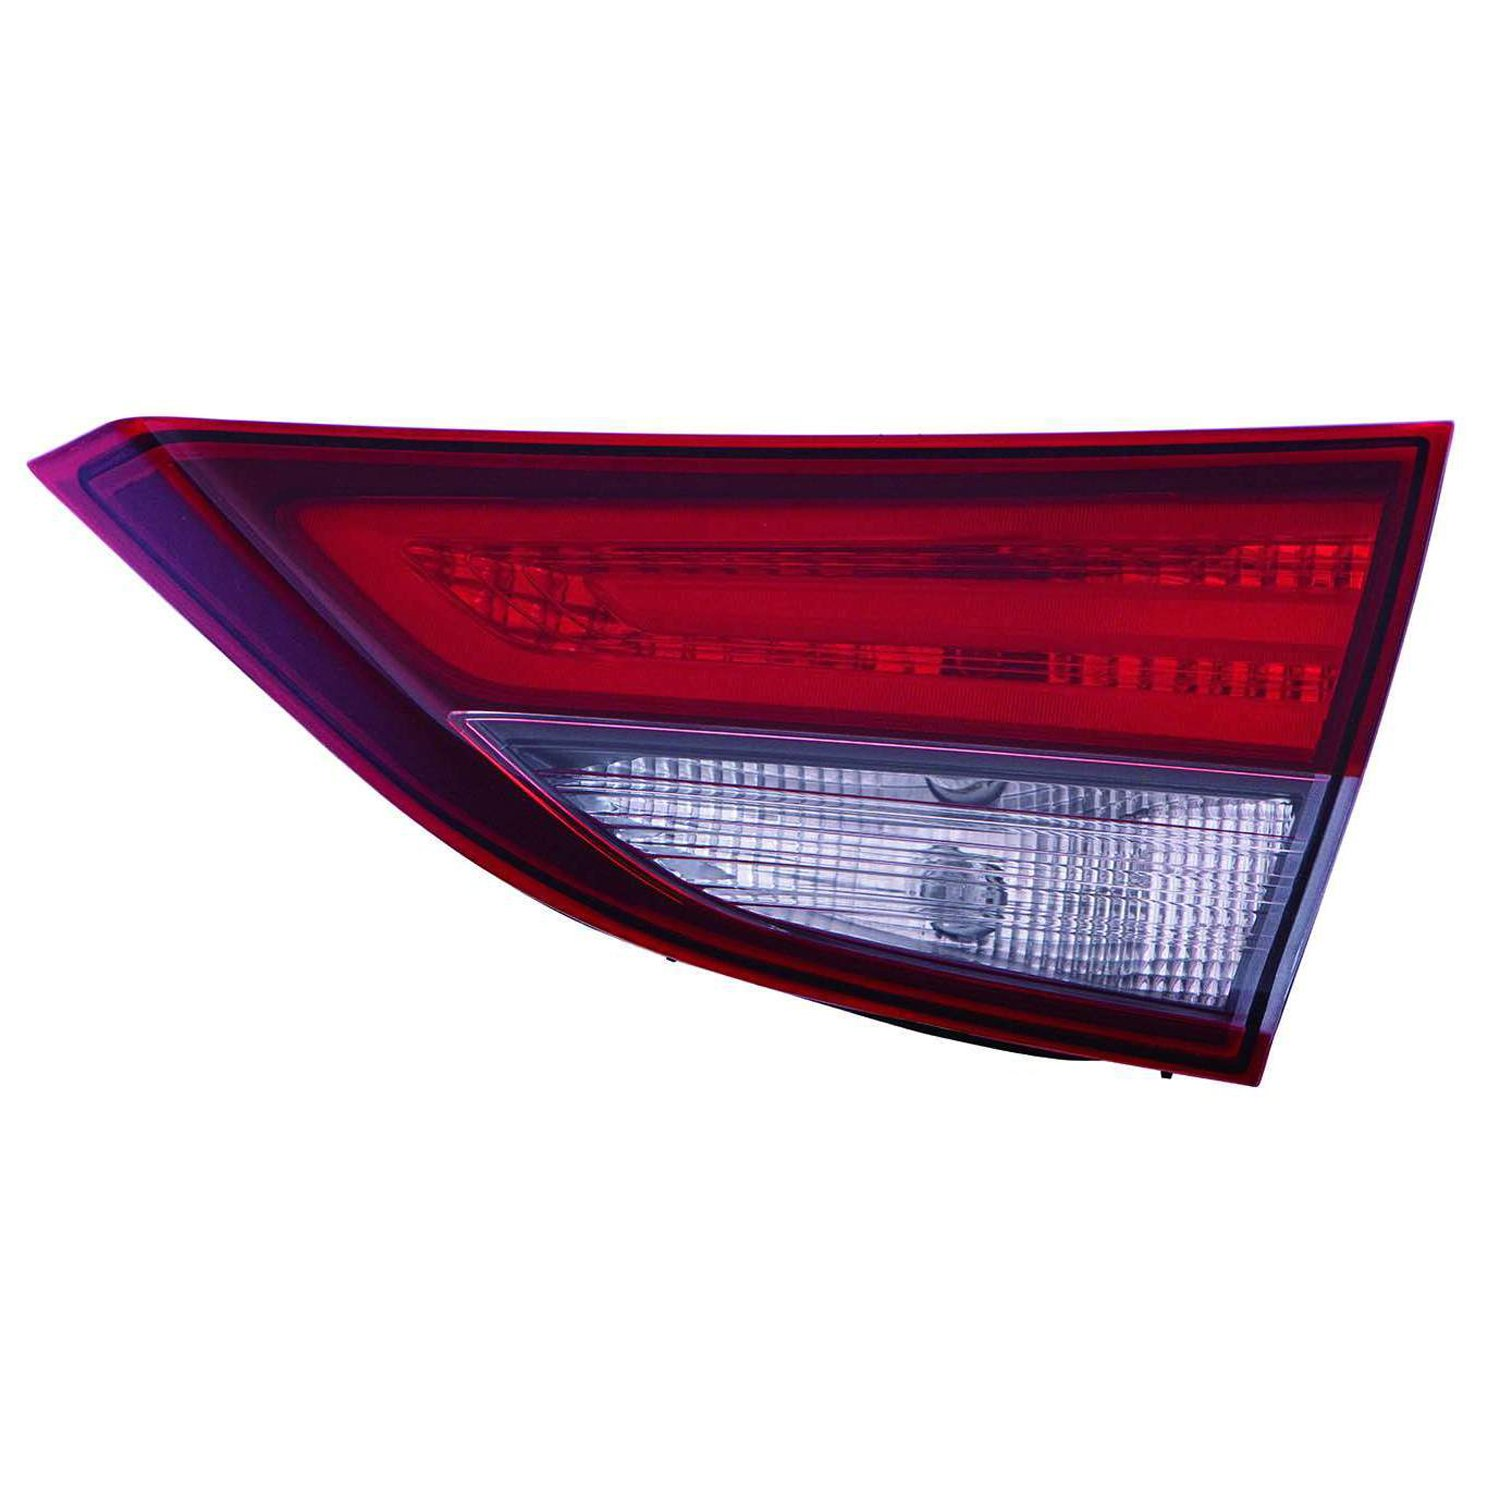 OE Replacement Tail Light Assembly HYUNDAI ELANTRA SEDAN 2014-2016 Multiple Manufacturers HY2803128C Partslink HY2803128